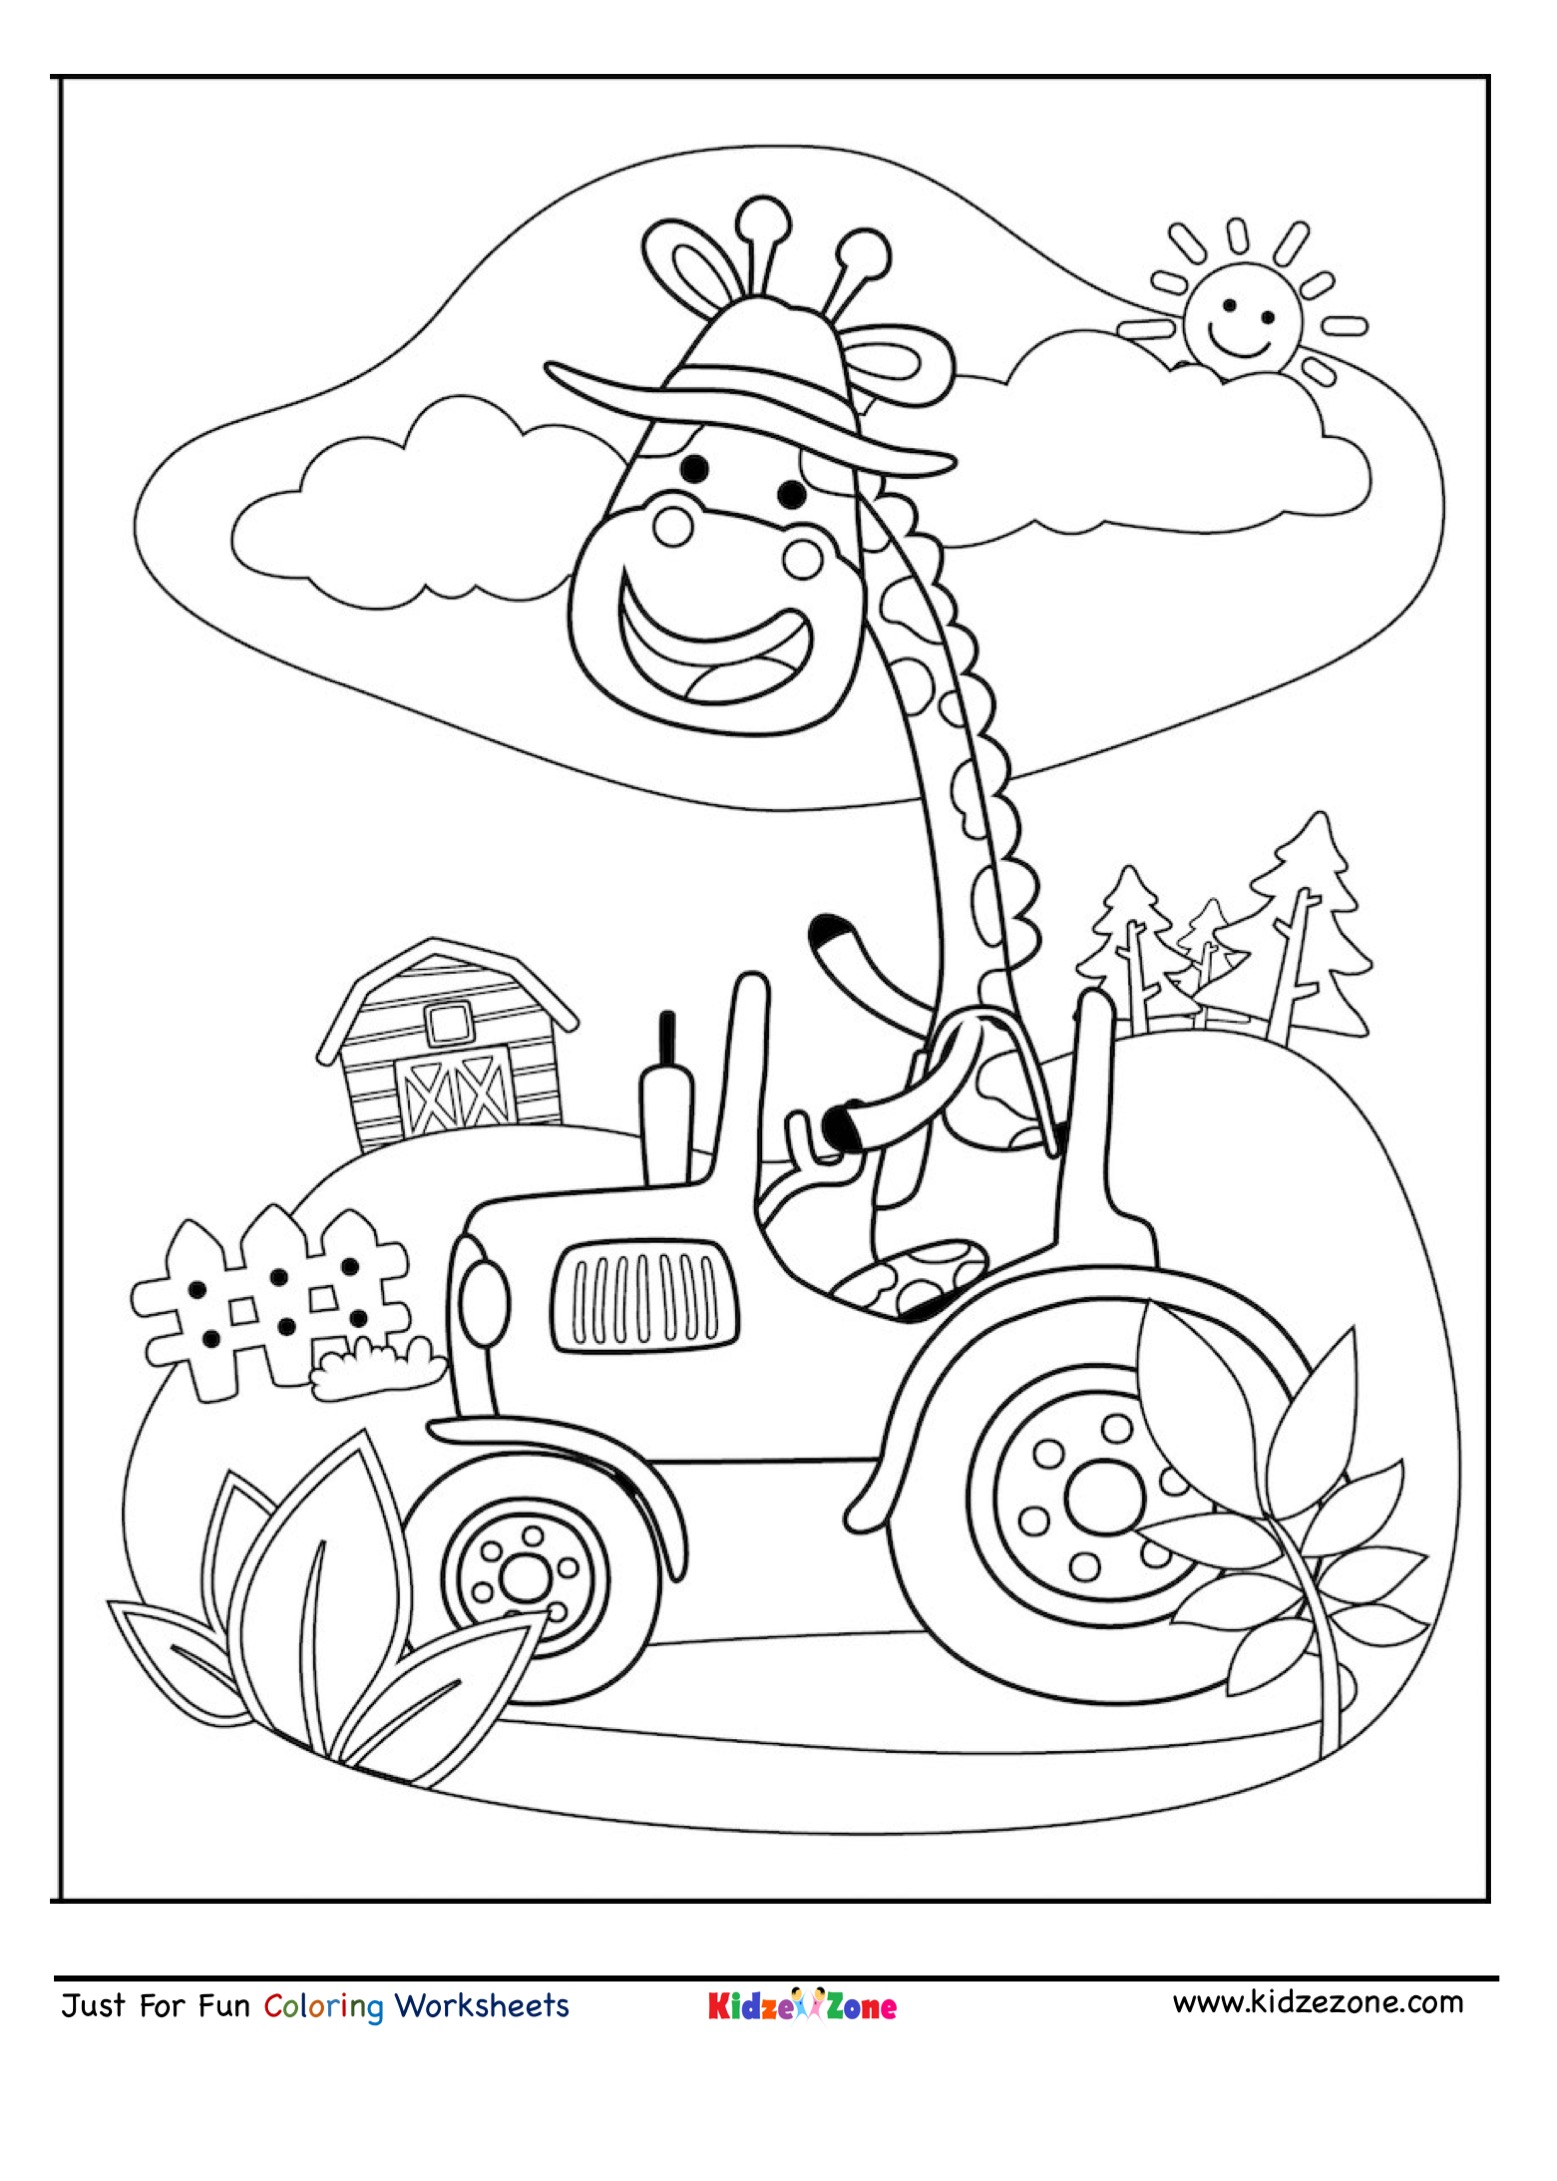 Giraffe Driving Cartoon Coloring Page